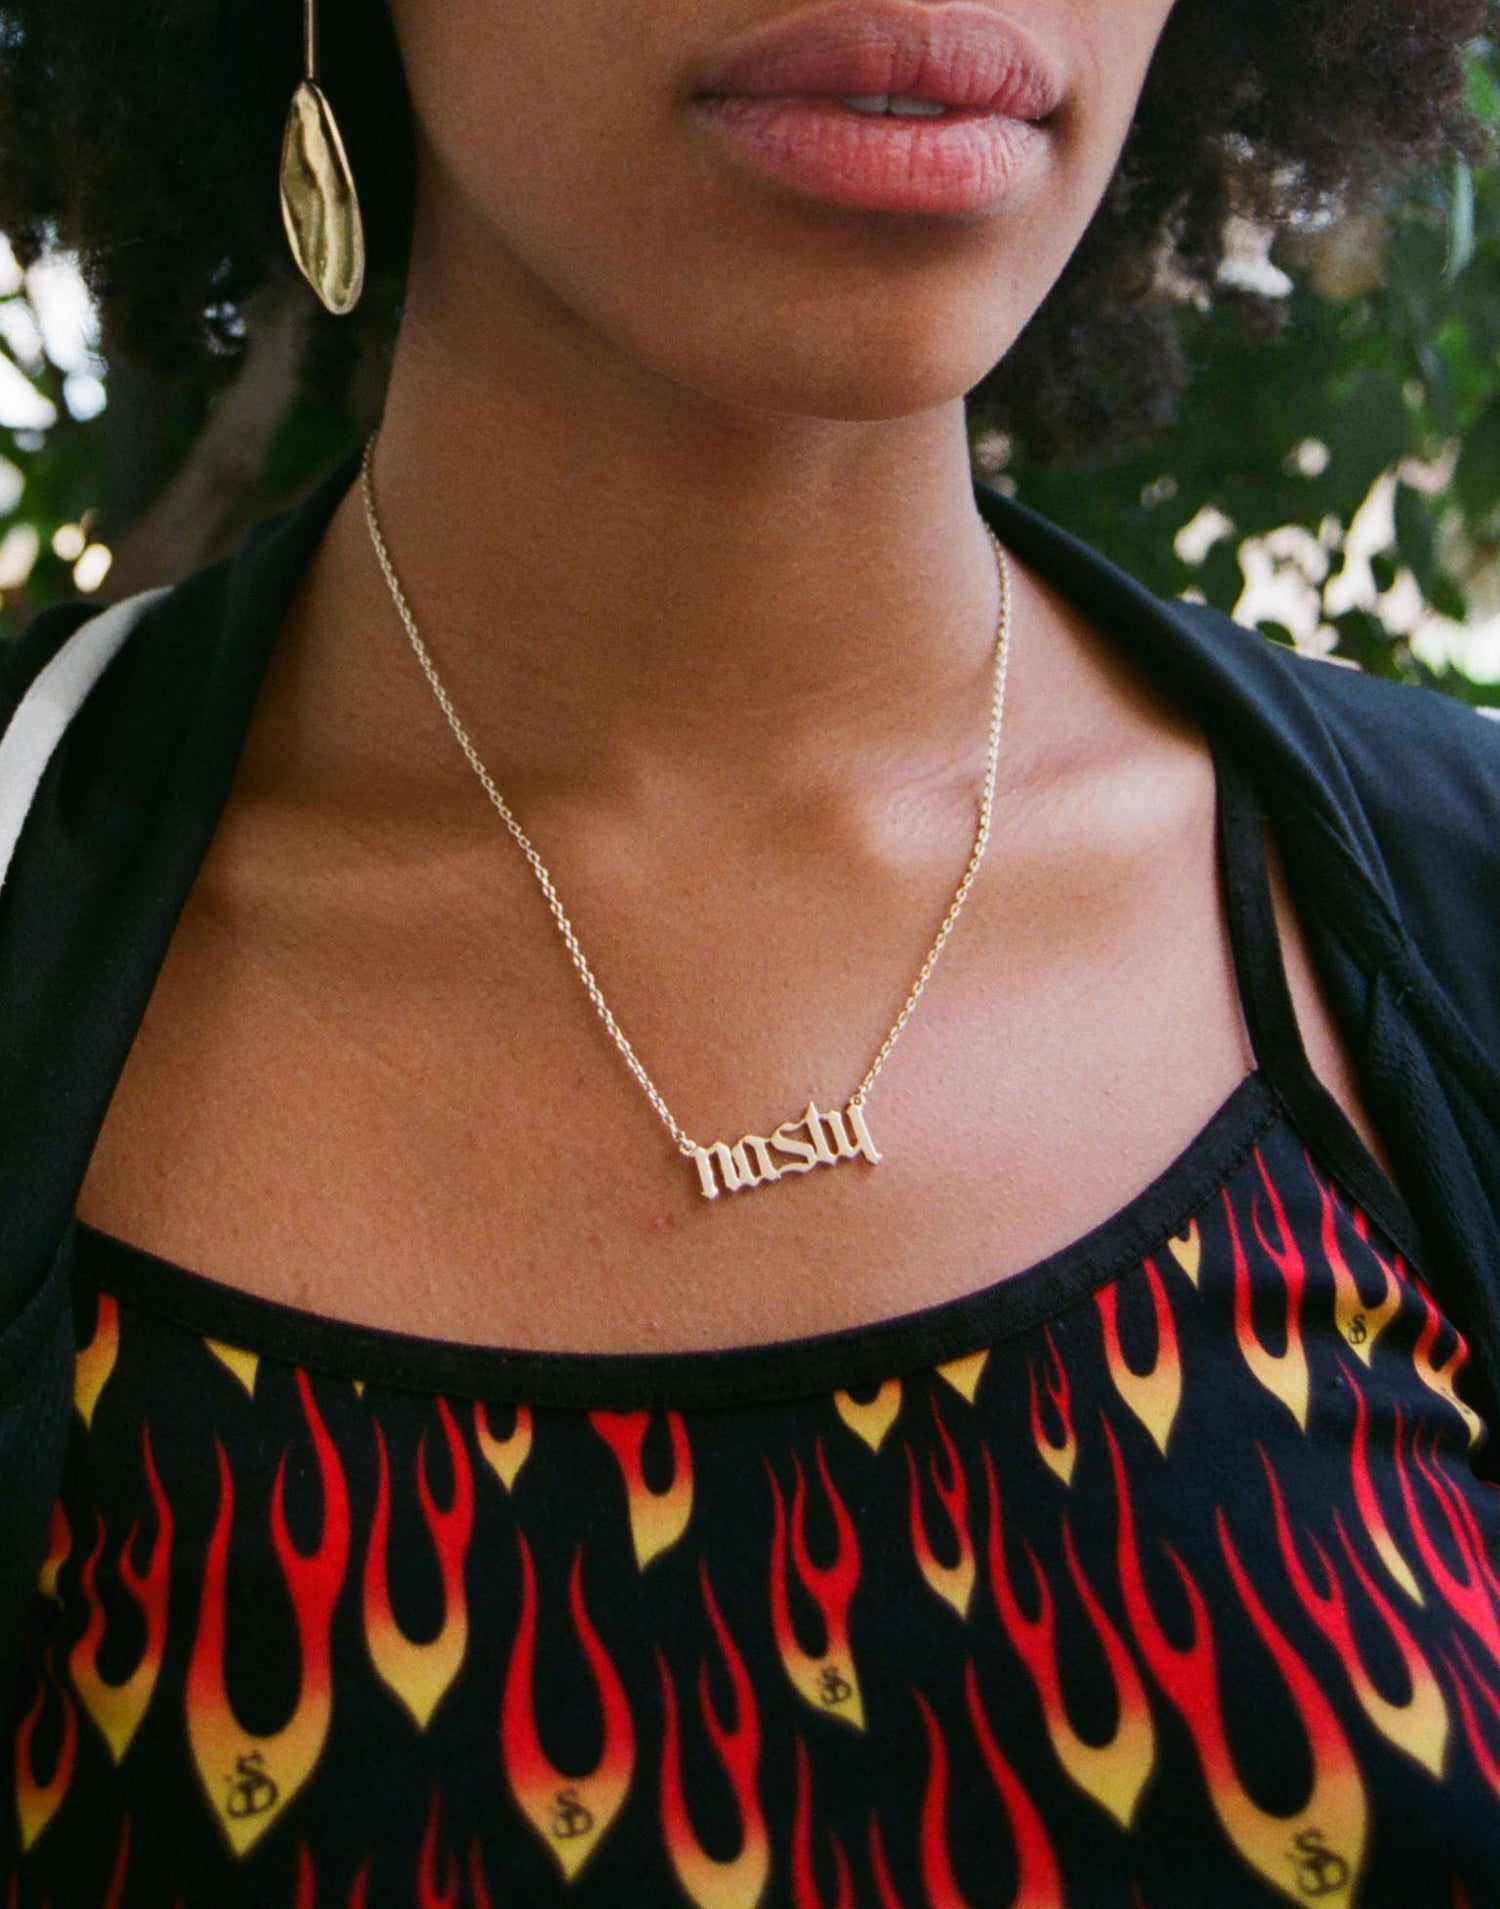 Nasty Necklace - Bing Bang Jewelry NYC